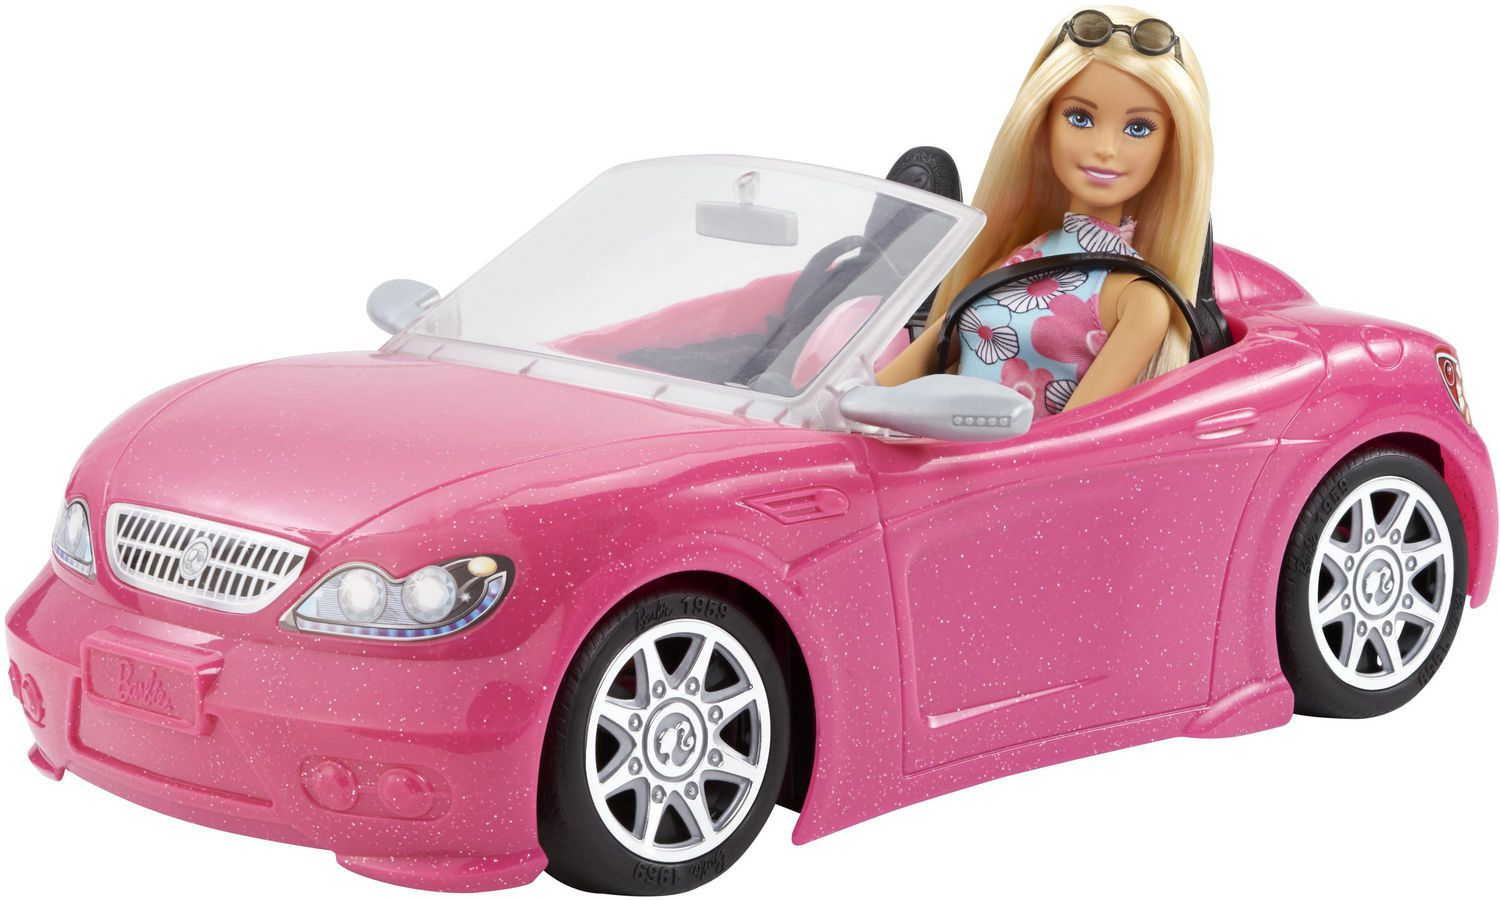 Barbie Doll And Pink Convertible Walmart Canada